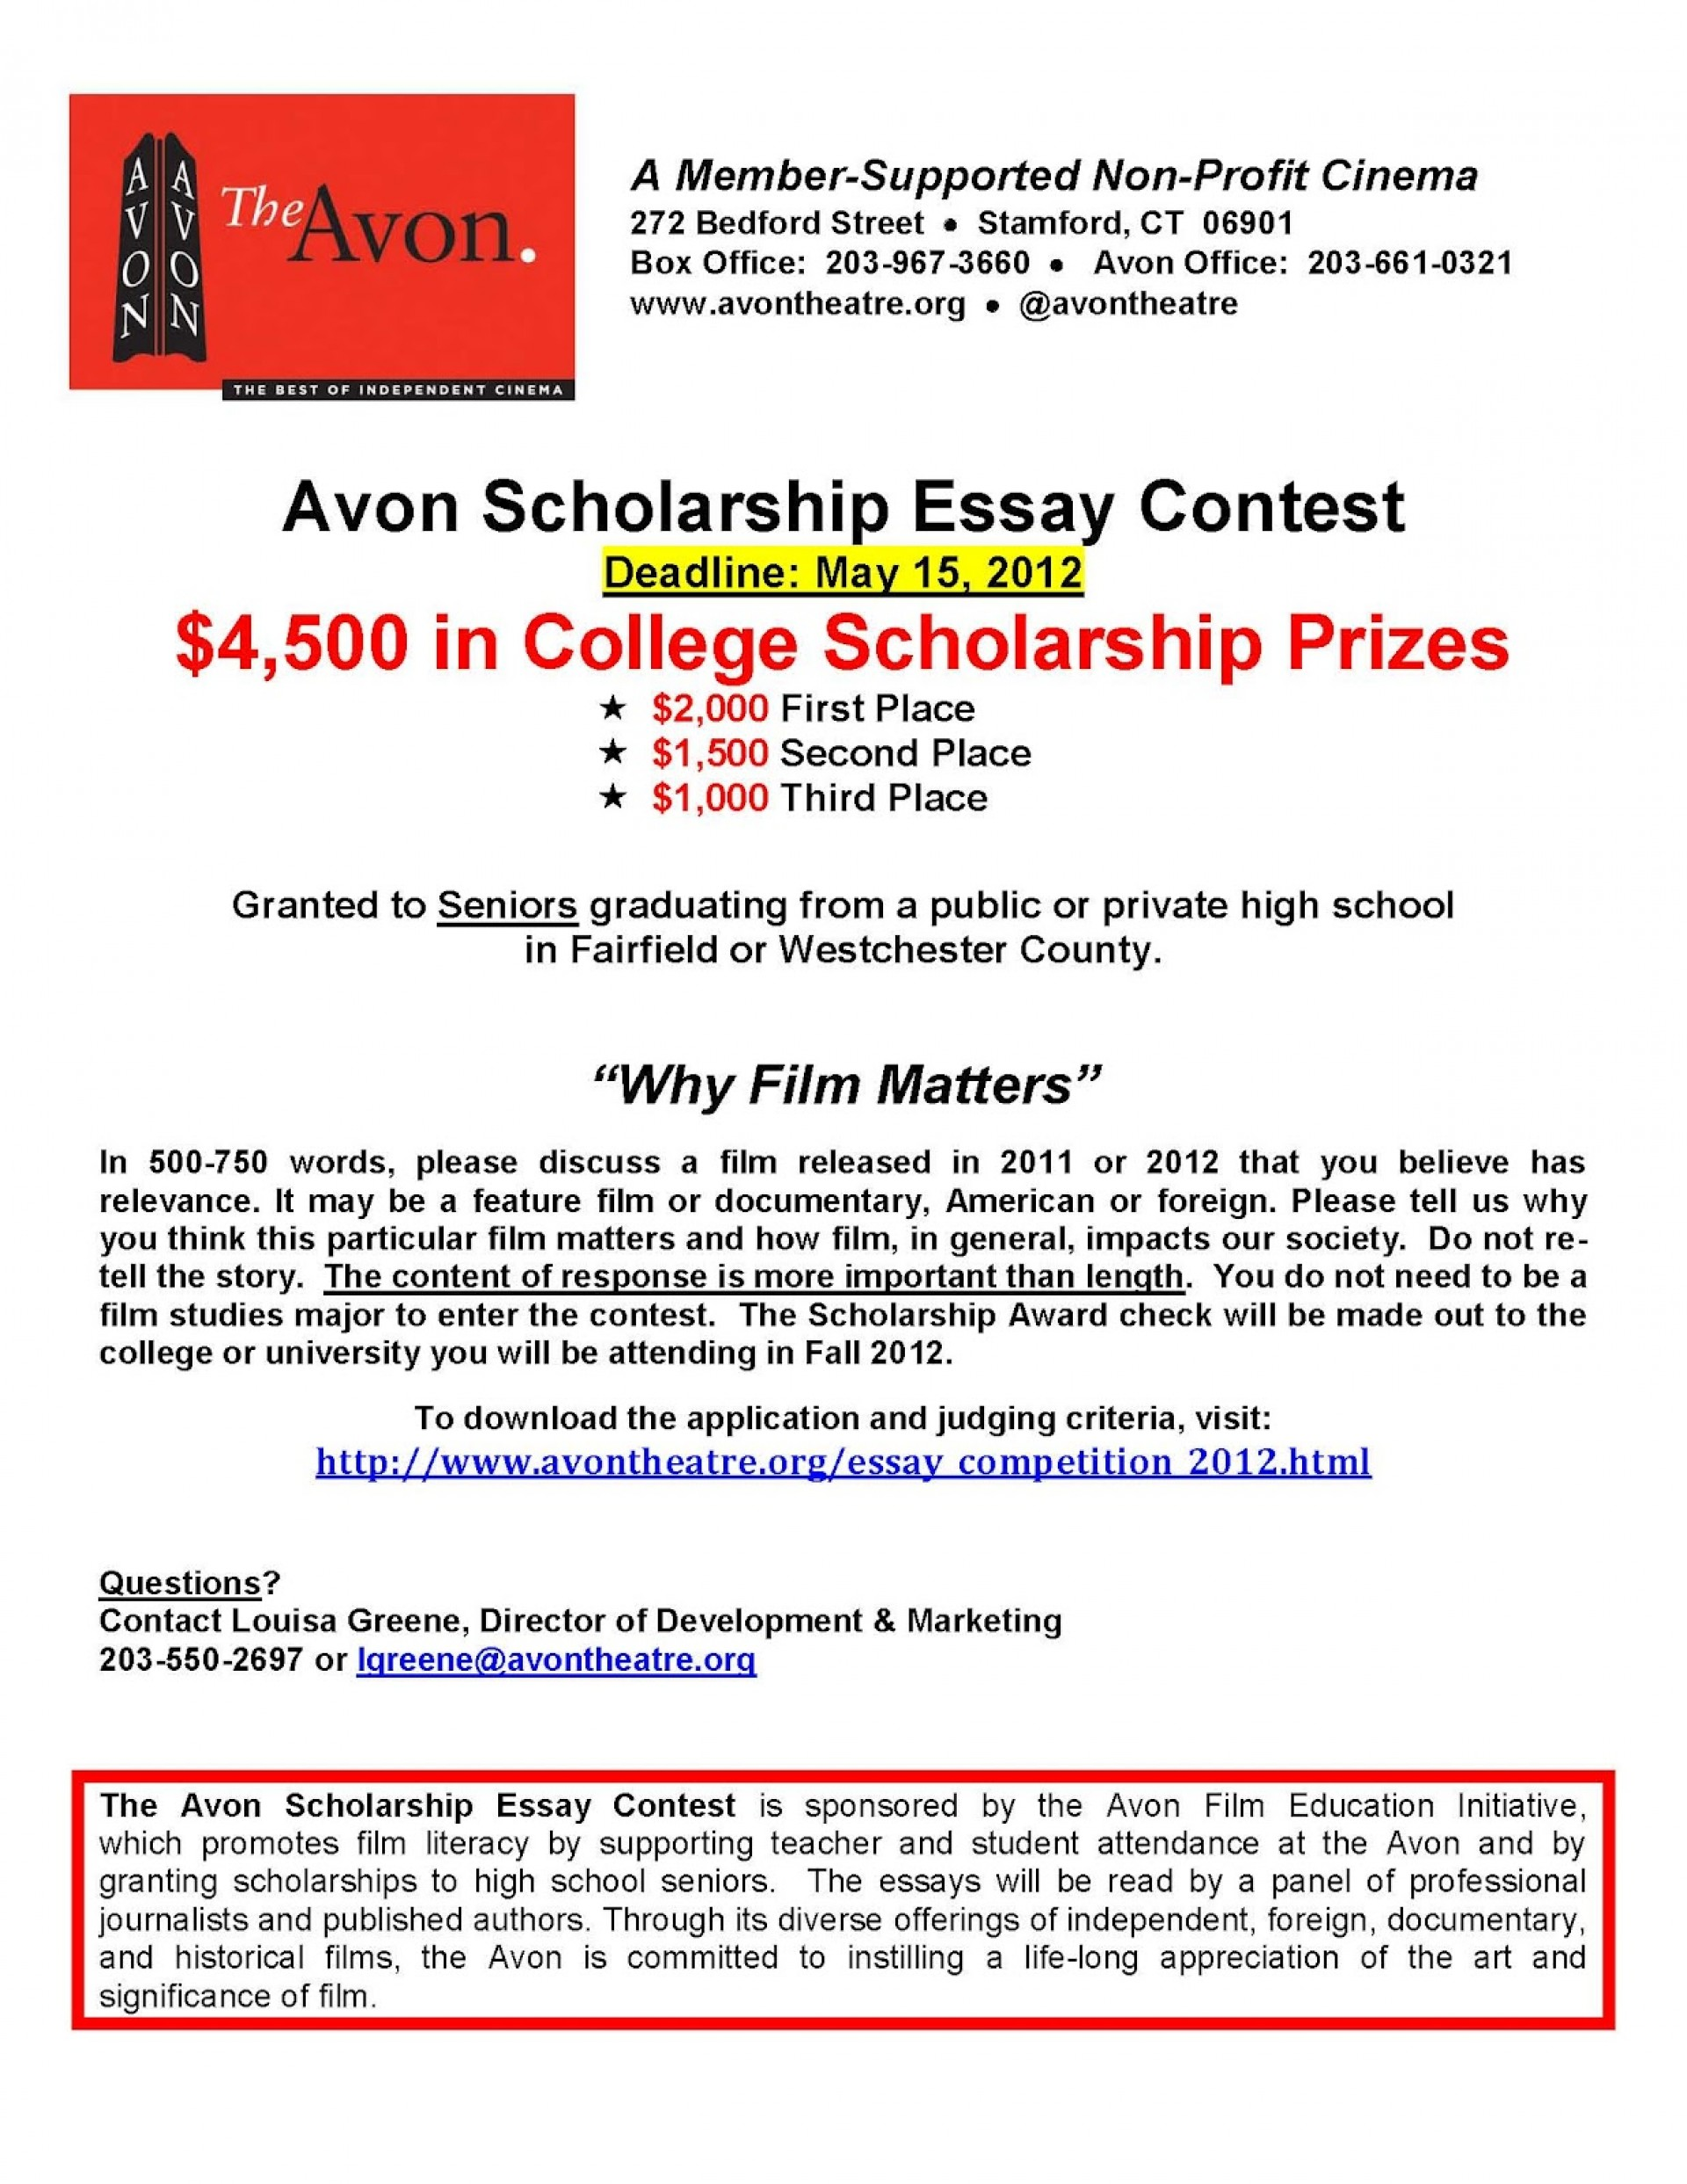 002 No Essay Collegeip Prowler Freeips For High School Seniors Avonscholarshipessaycontest2012 In Texas California Class Of Short Example Wondrous Scholarship Scholarships 2019 1920